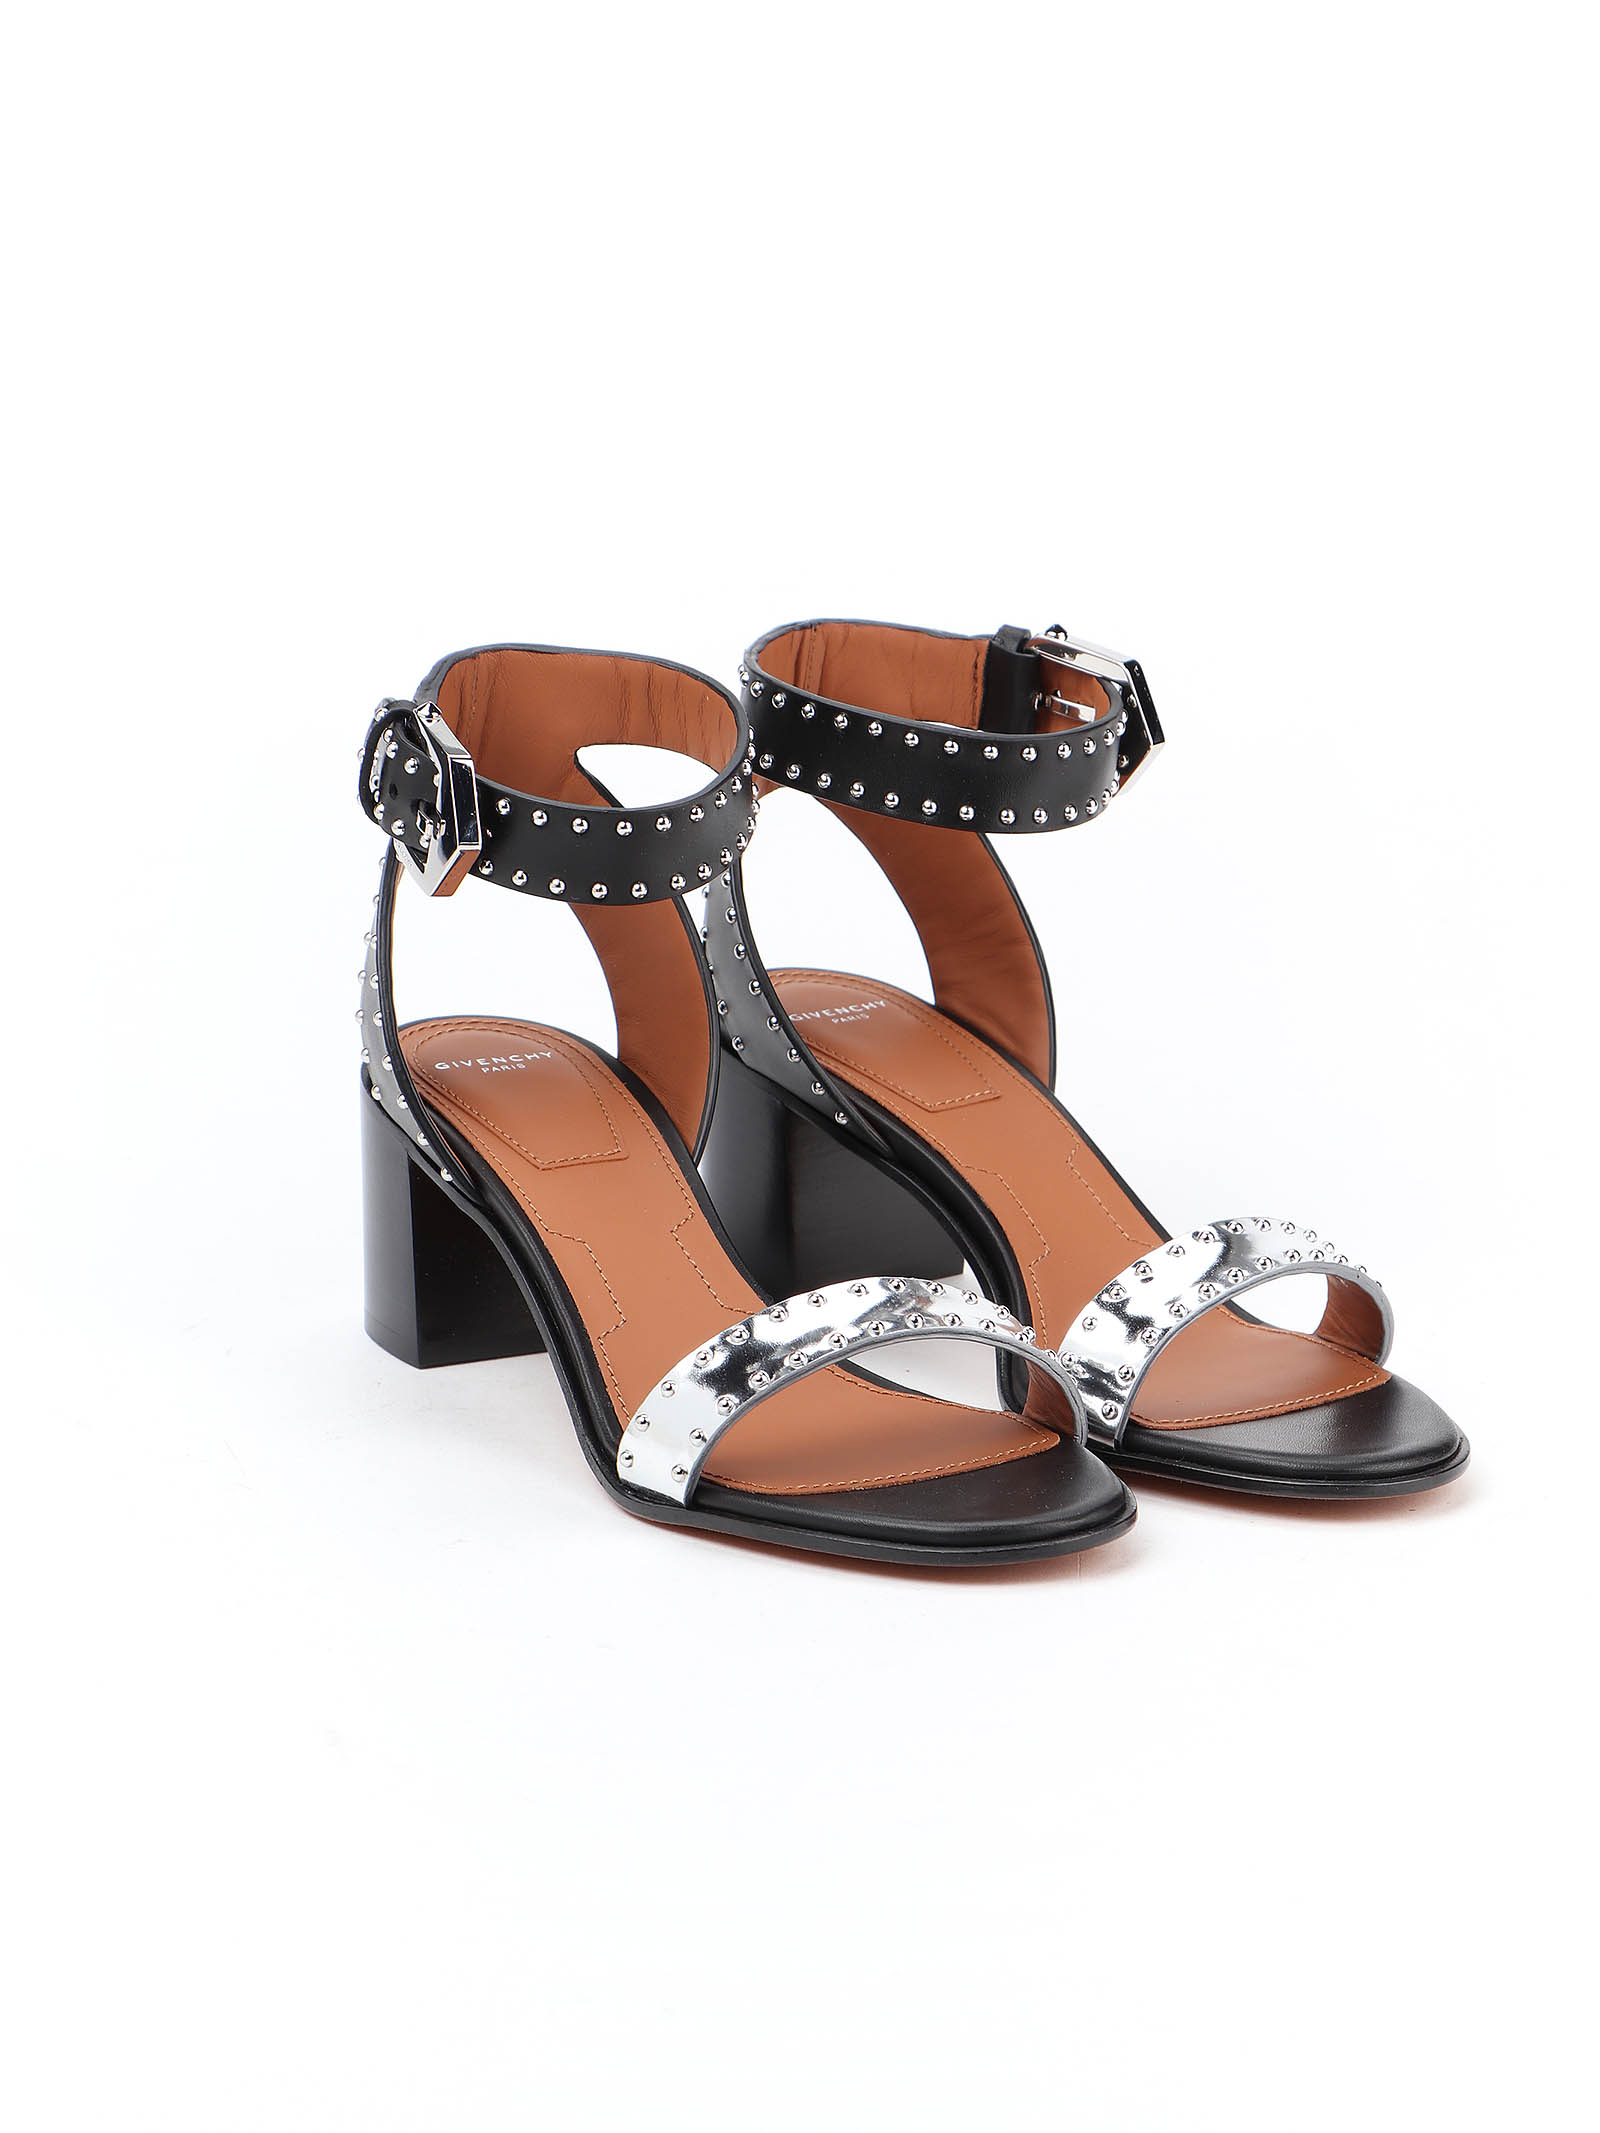 Picture of Givenchy | Sandal